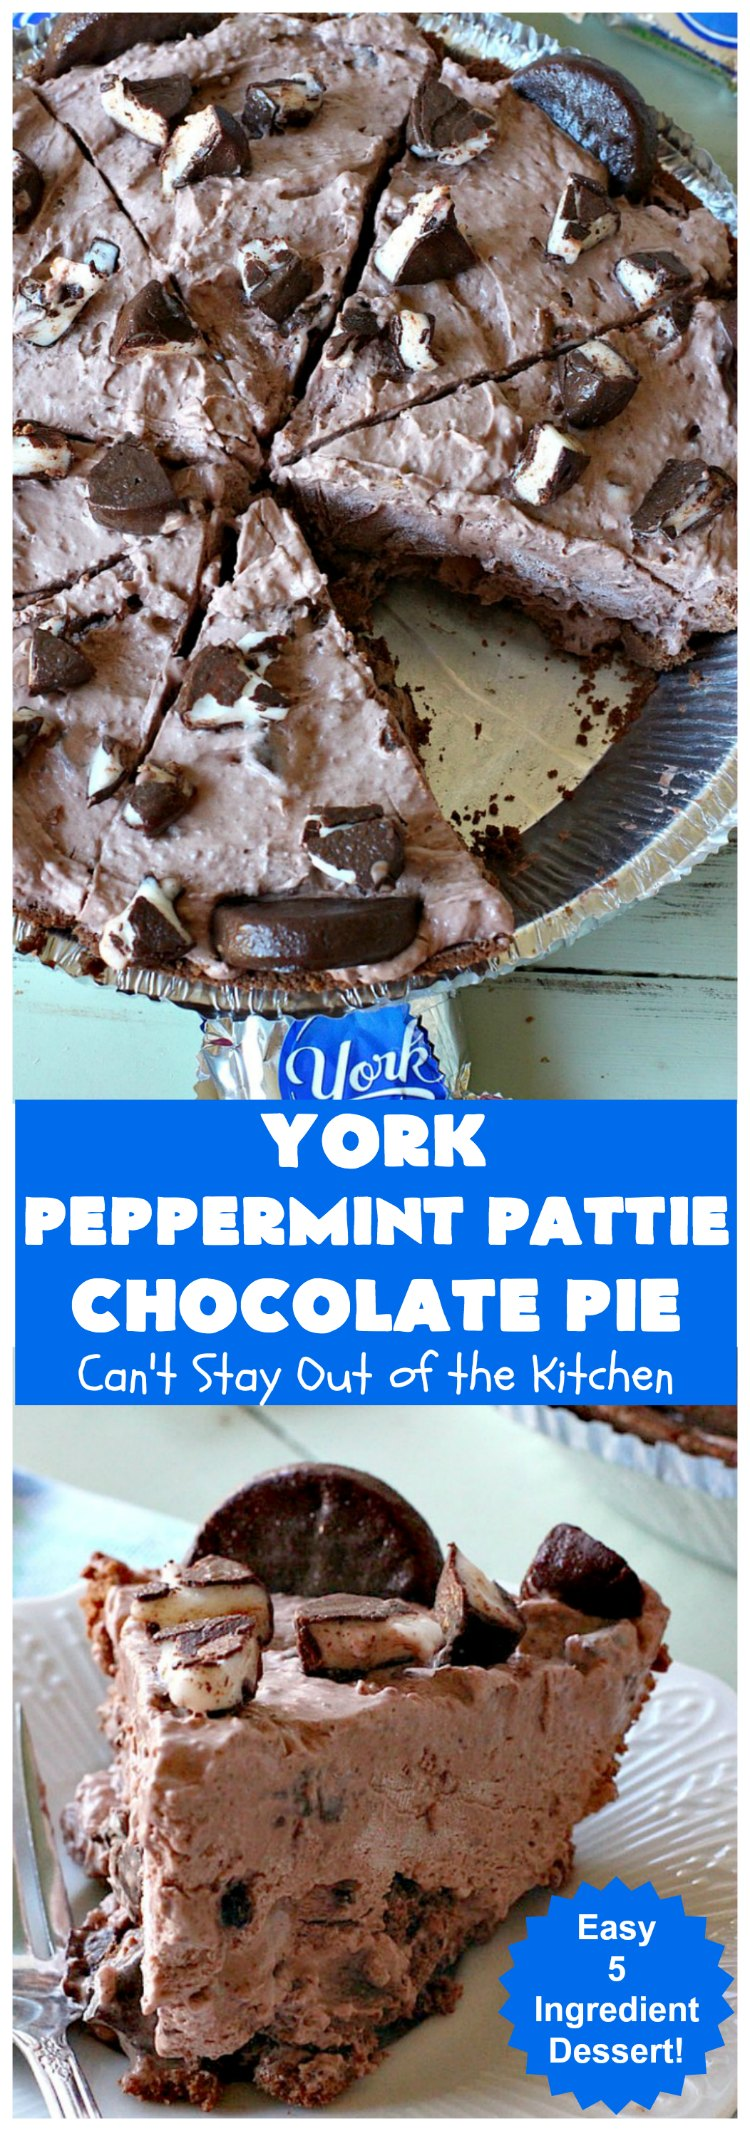 York Peppermint Pattie Chocolate Pie | Can't Stay Out of the Kitchen | this amazing #pie is chocked full of #YorkPeppermintPatties so it has amazing #chocolate & #peppermint flavor. Terrific #dessert for company or #holidays. #ChocolatePie #HolidayDessert #ChocolateDessert #PeppermintDessert #YorkPeppermintPattieChocolatePie